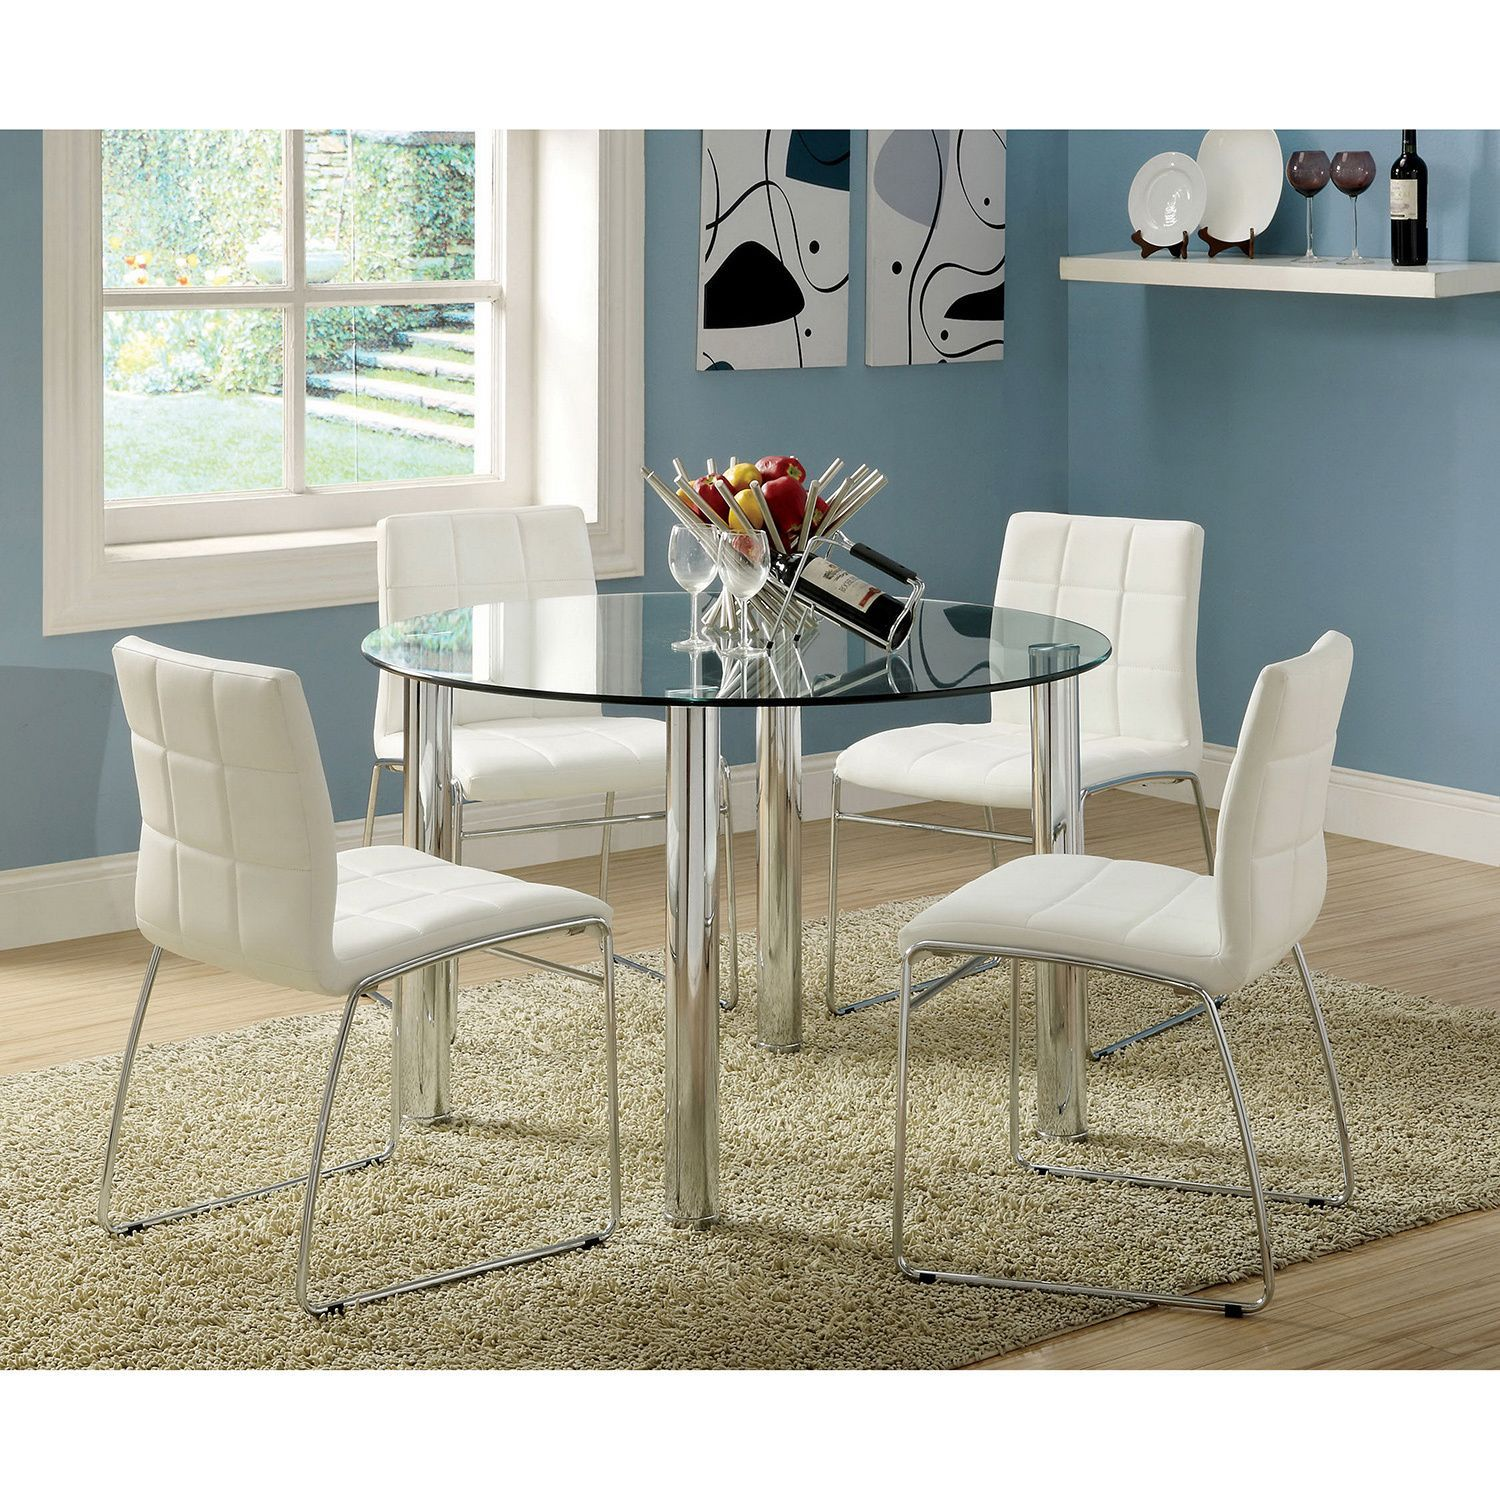 Furniture of America Donnabella 5 piece Chrome plated Steel